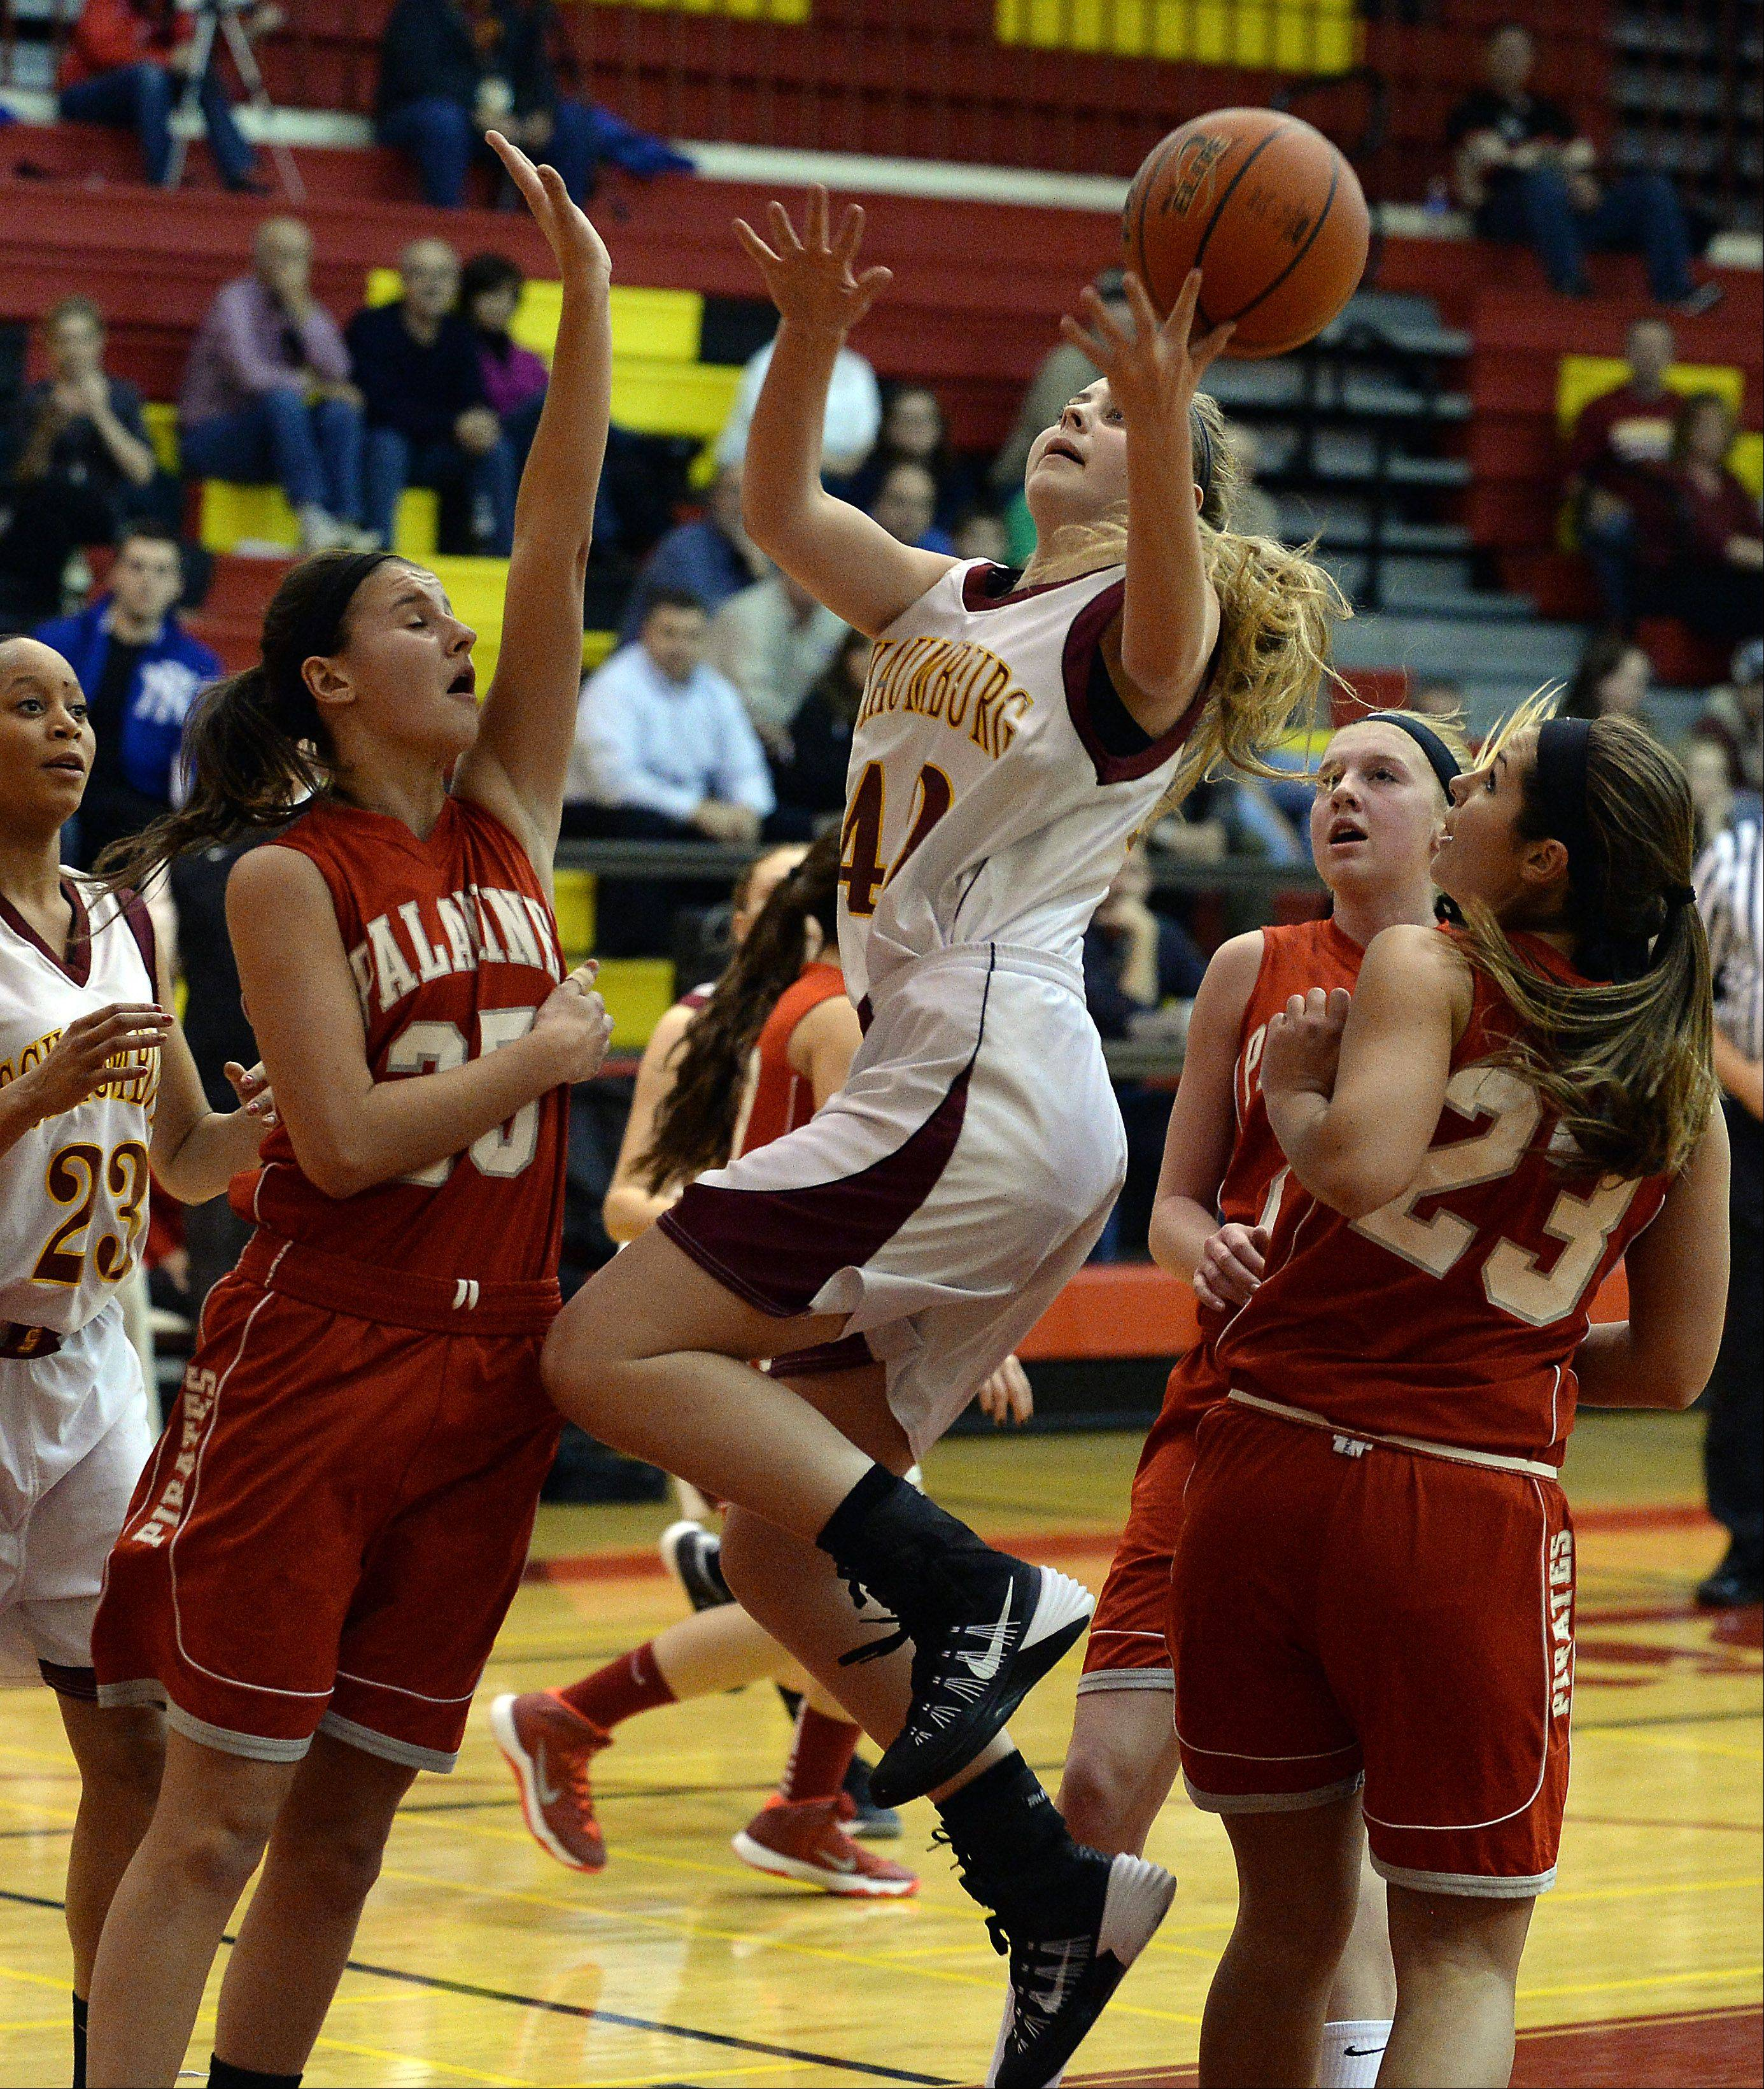 Schaumburg�s Mallory Gerber drives as Palatine�s Erin Mayer and Morgan Gallagher block her path in the first quarter of girls varsity basketball at Schaumburg on Friday.